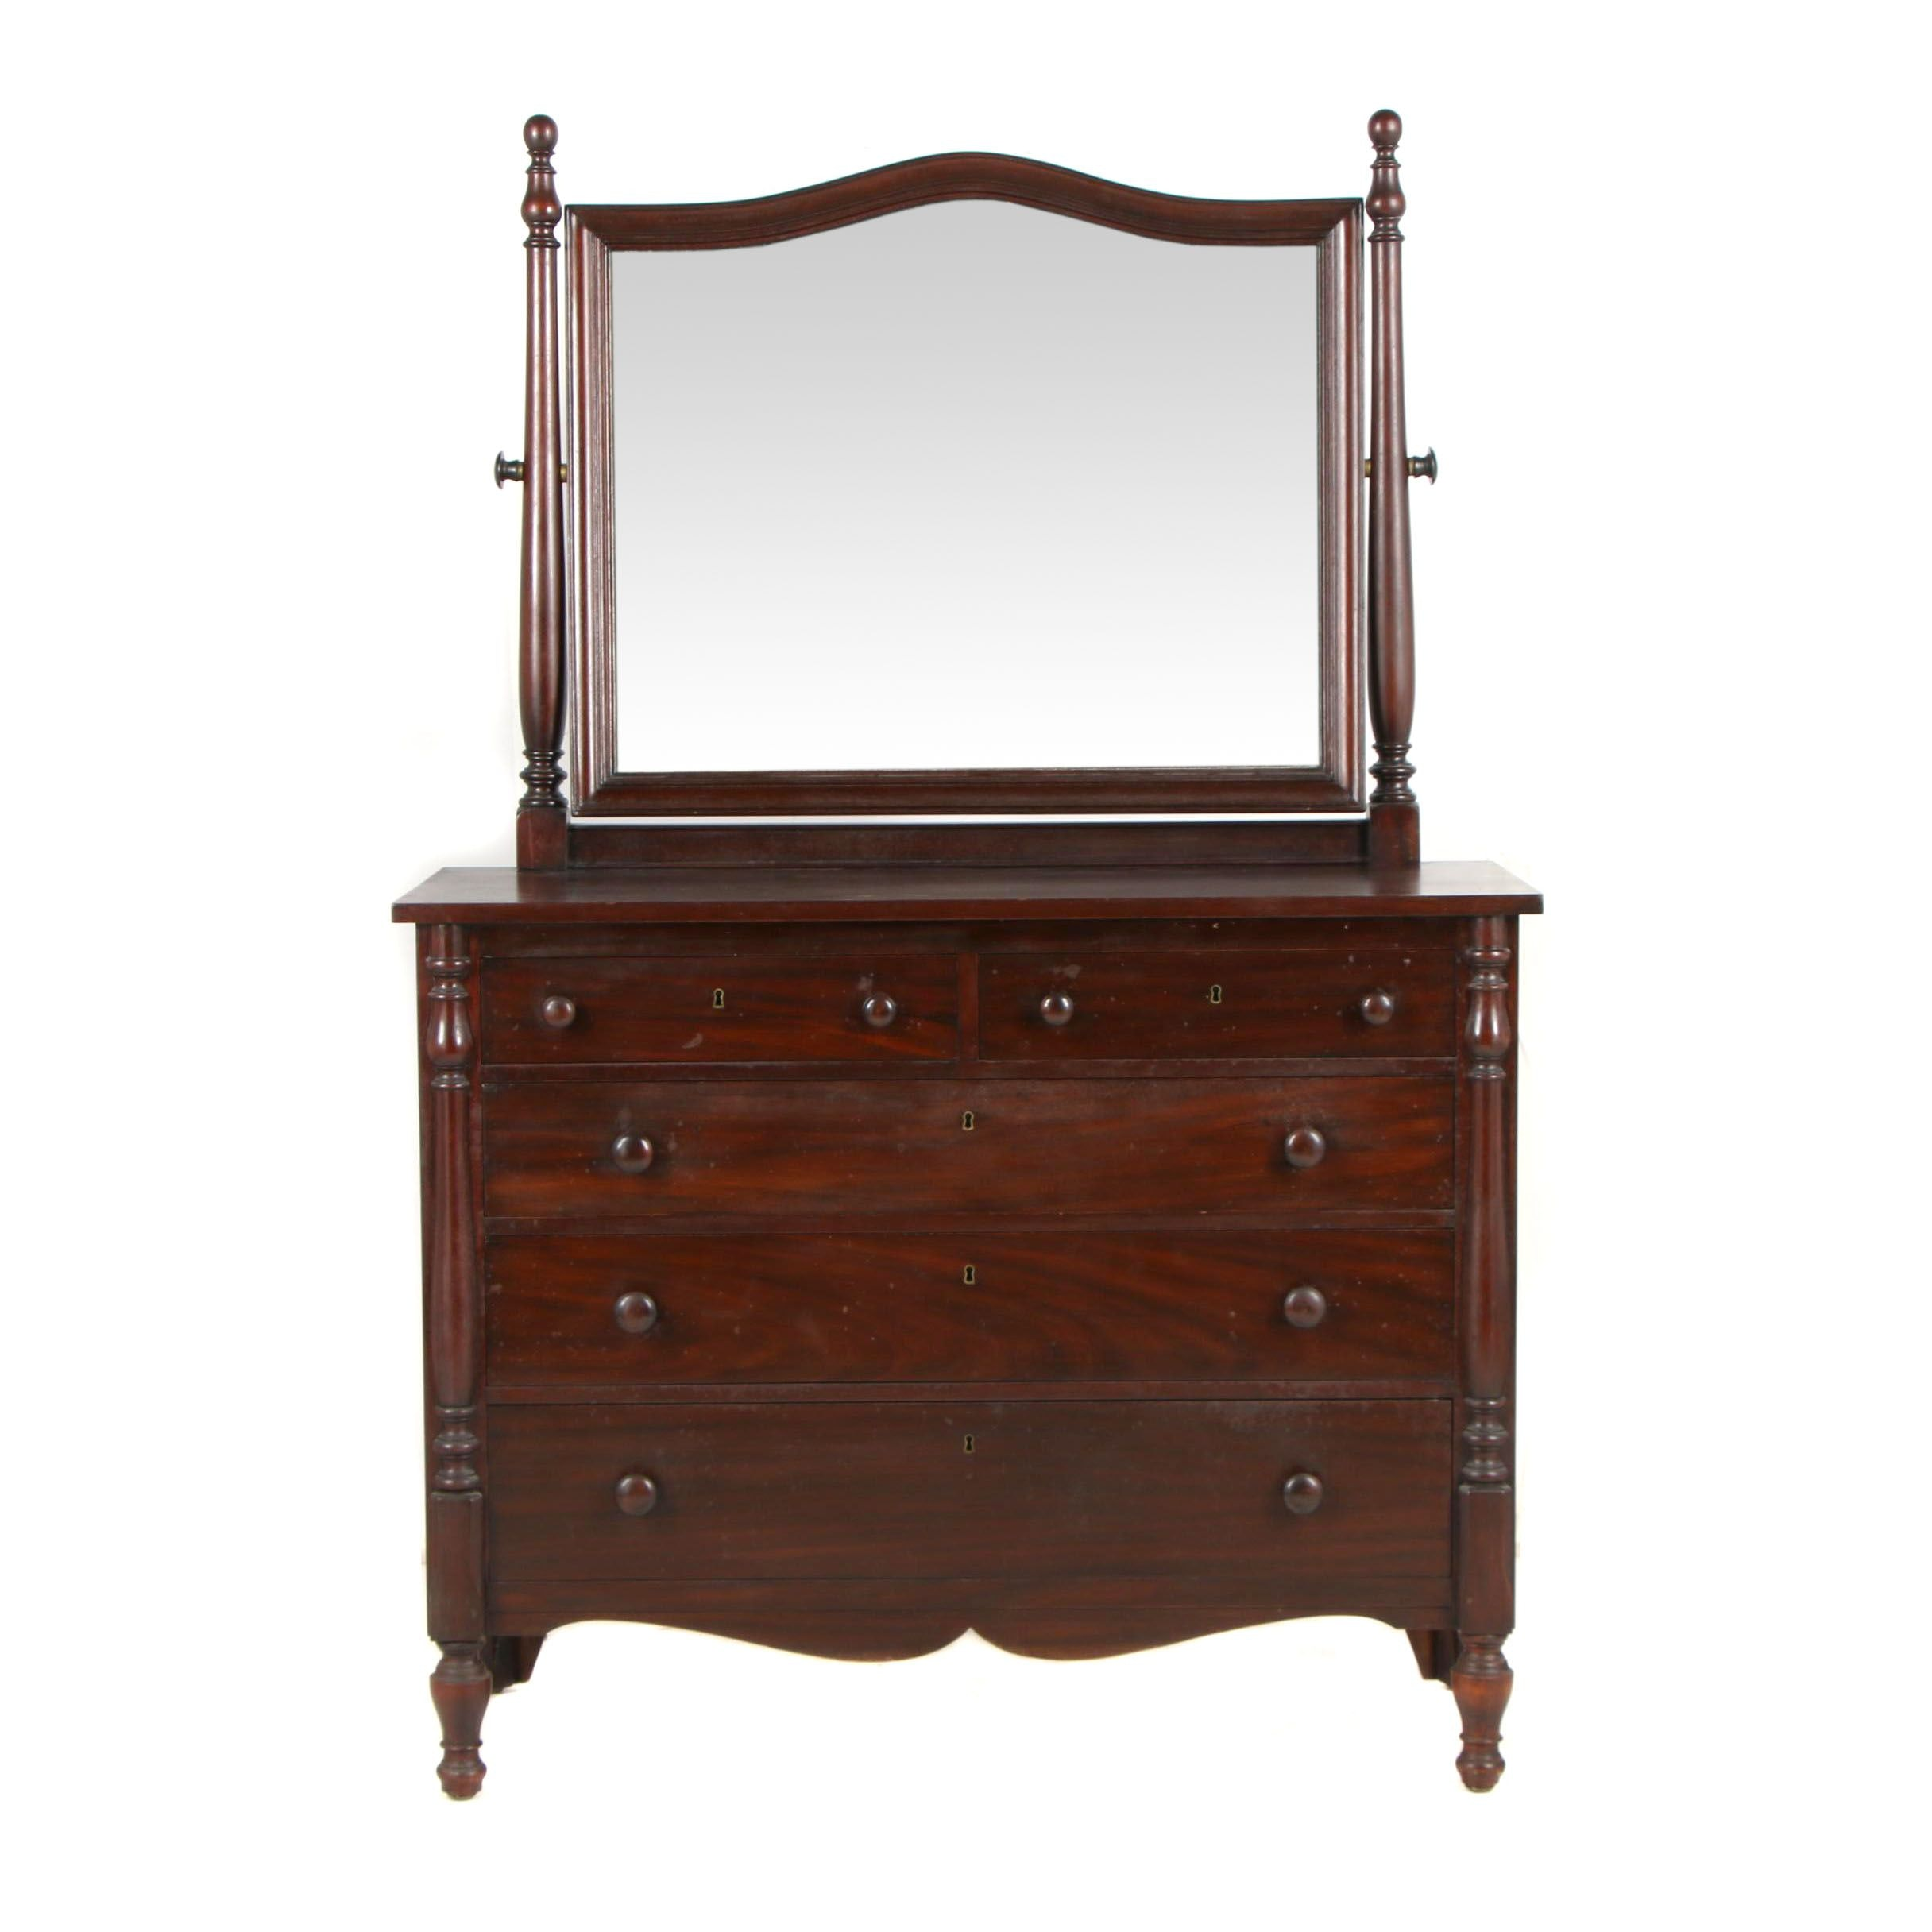 Colonial Revival Style Chest of Drawers with Mirror, in Mahogany, Late 19th C.